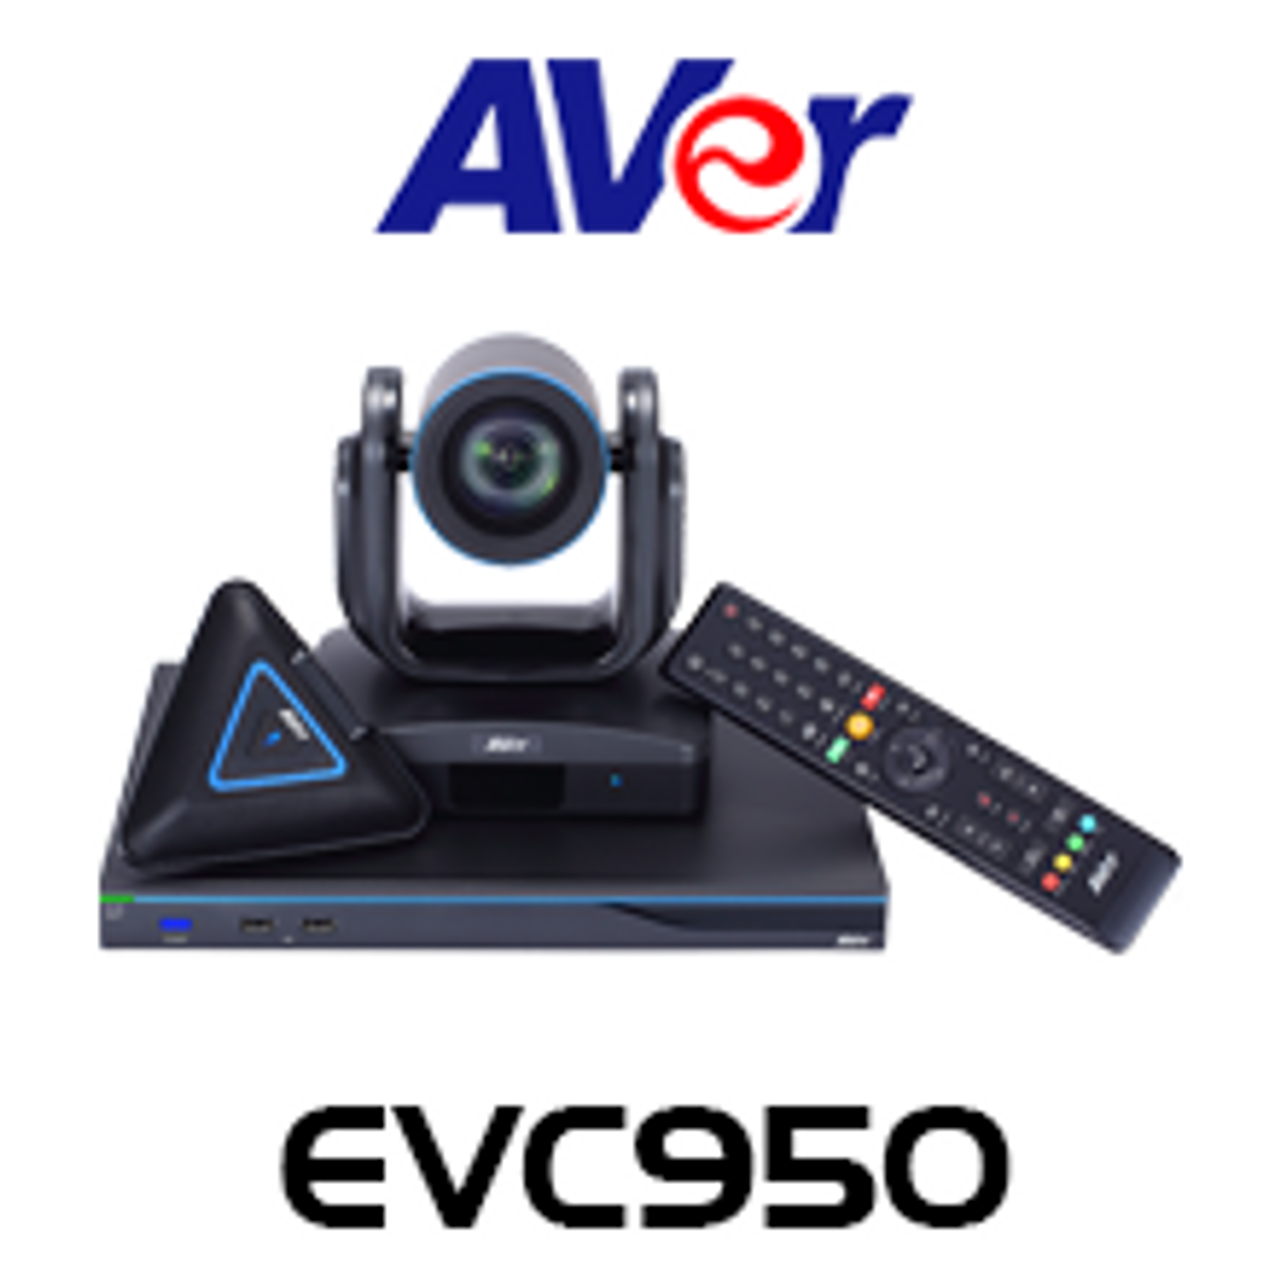 Aver EVC950 10-Site 18x PTZ Endpoint Pro Video Conferencing System